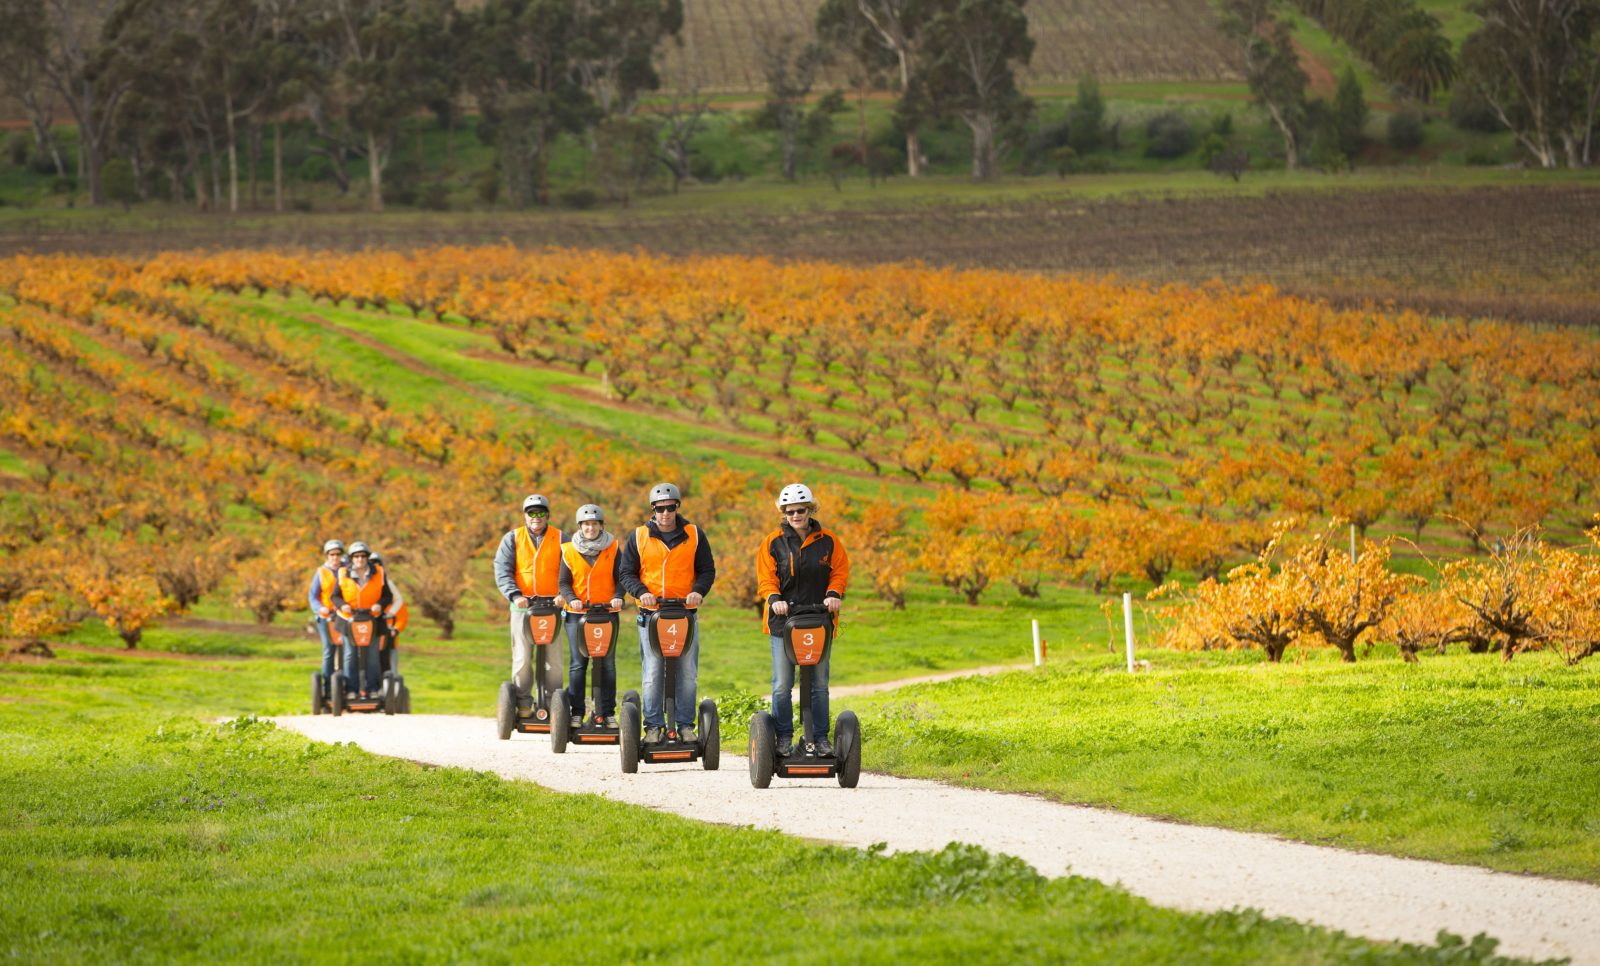 On the way to the 100yr old bush vines.